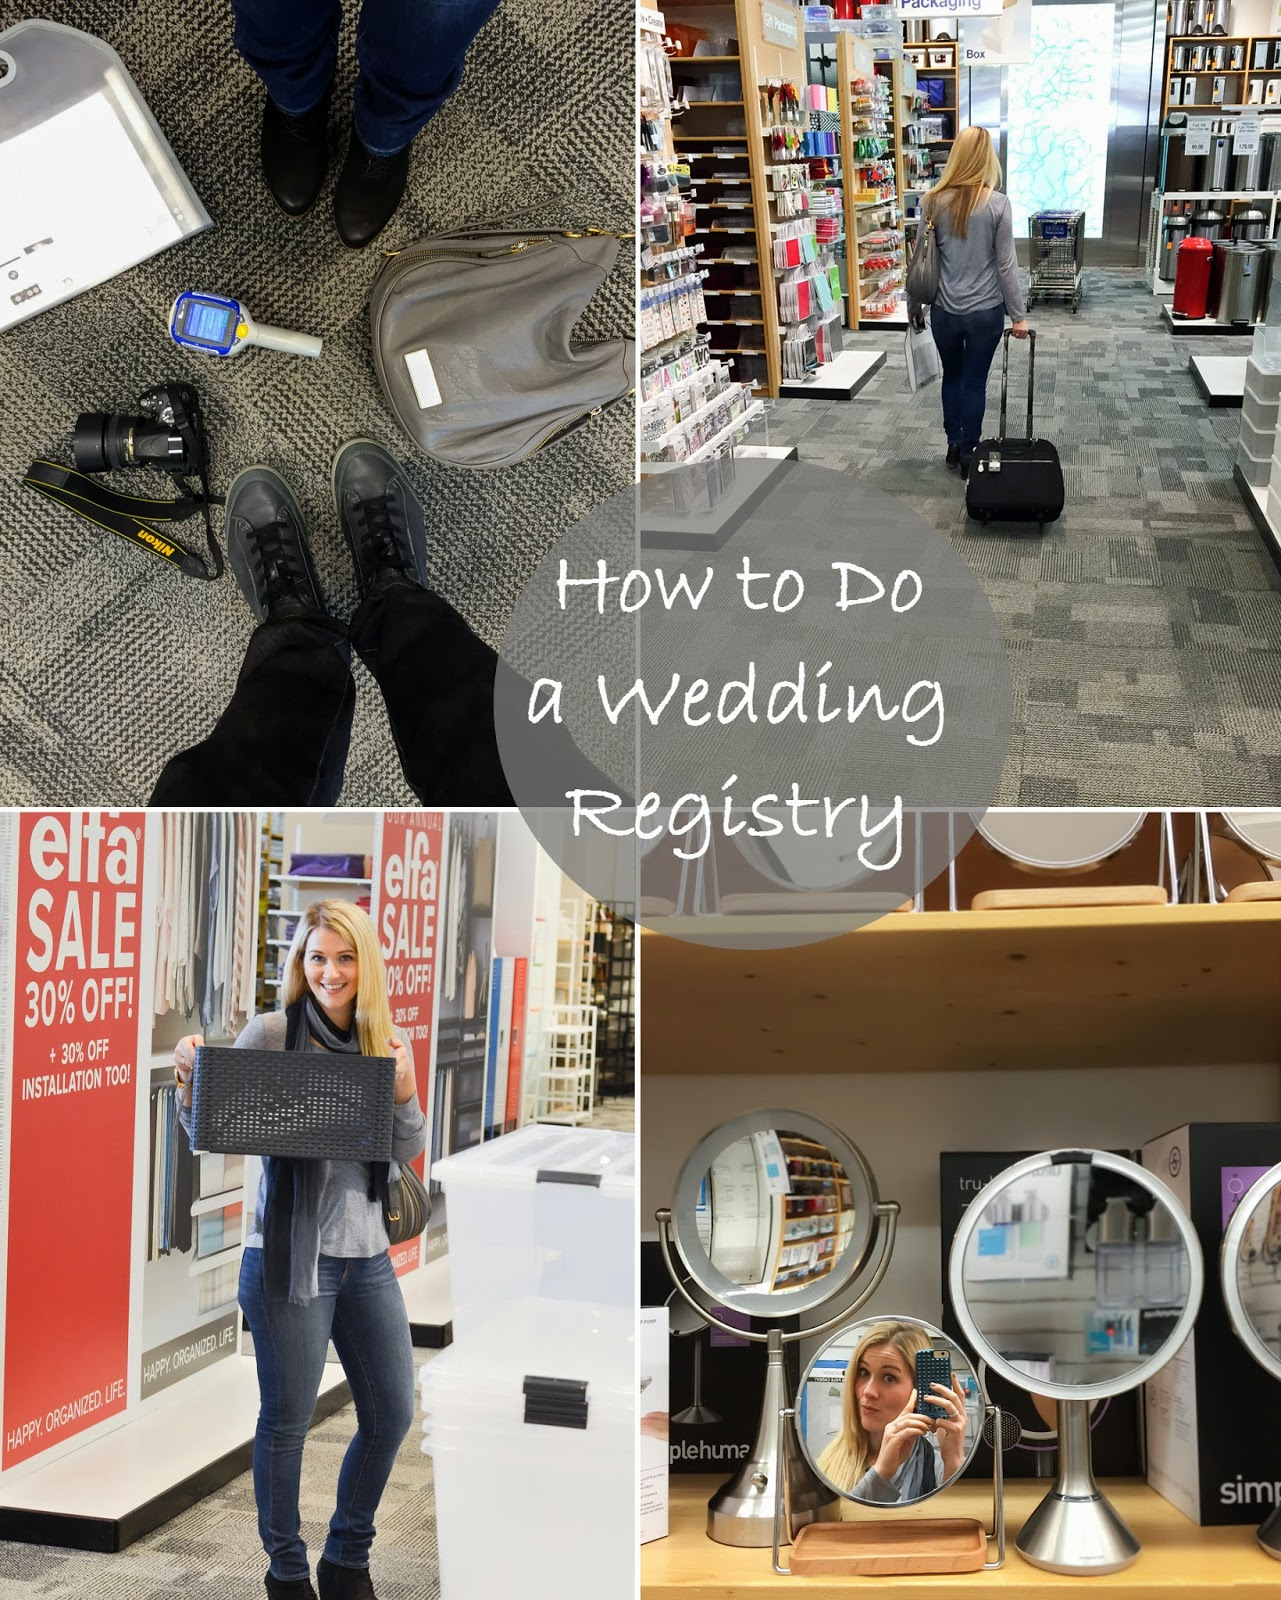 How to do a Wedding Registry | Organized Wedding Planning Tips | Luci's Morsels :: Los Angeles Lifestyle Blogger